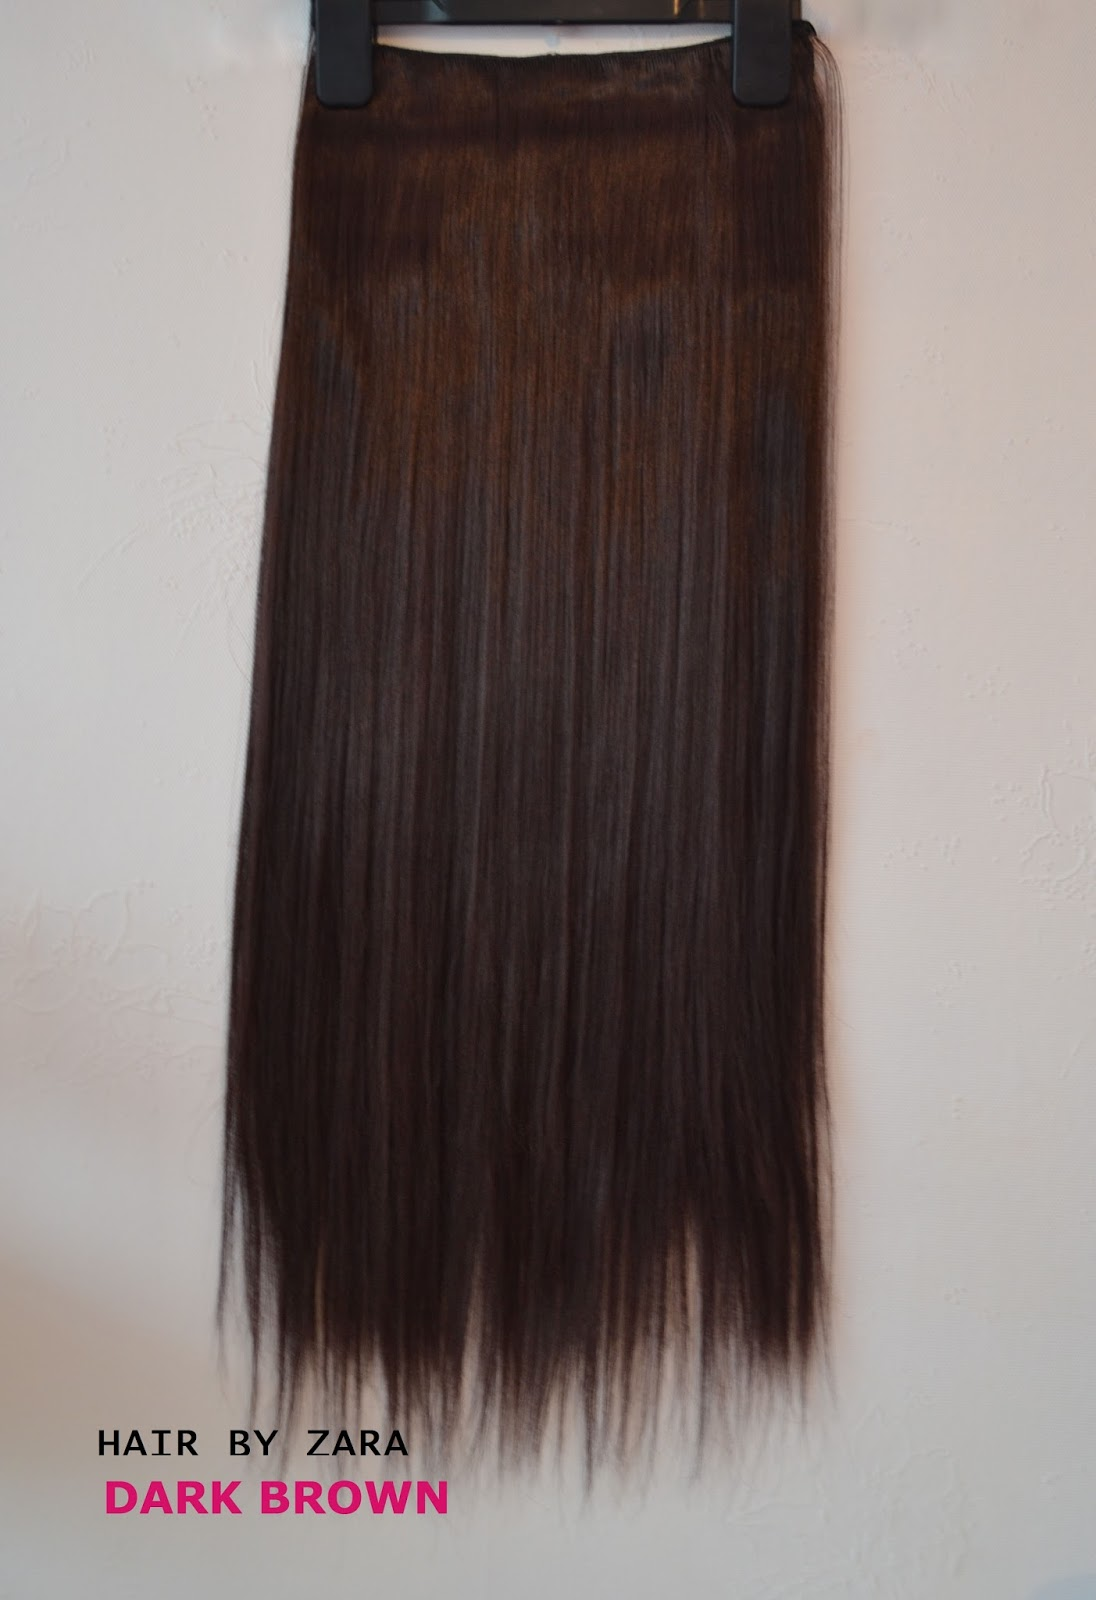 Brown And Black Living Room Decorating Ideas: HAIR BY ZARA: HAIR BY ZARA HAIR EXTENSIONS